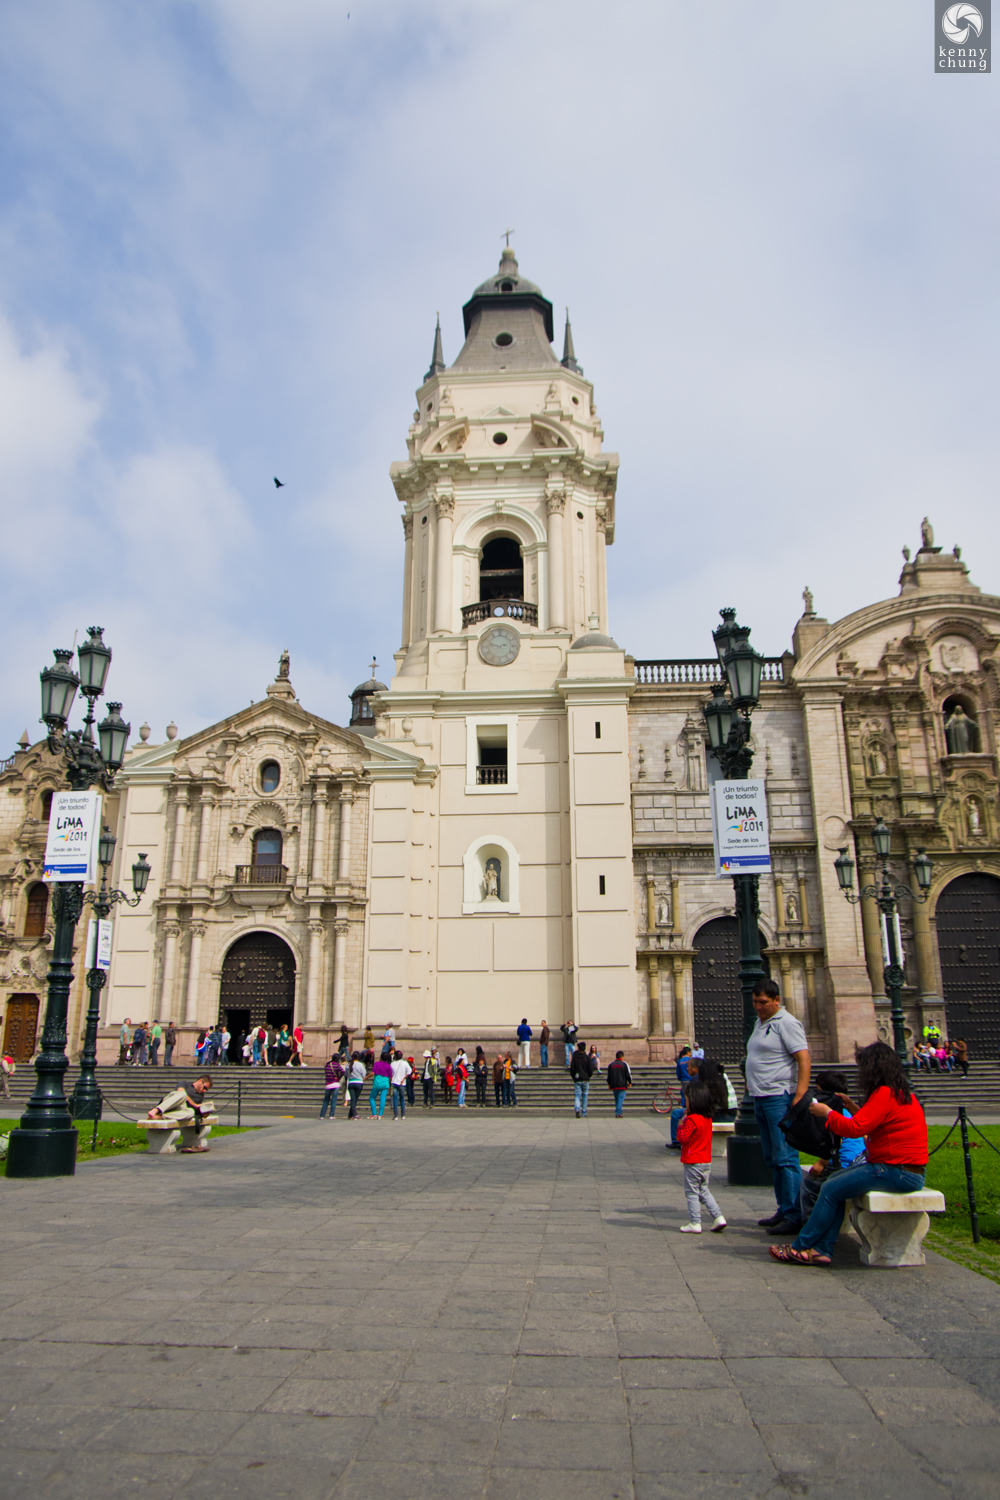 Cathedral of Lima in Plaza Mayor